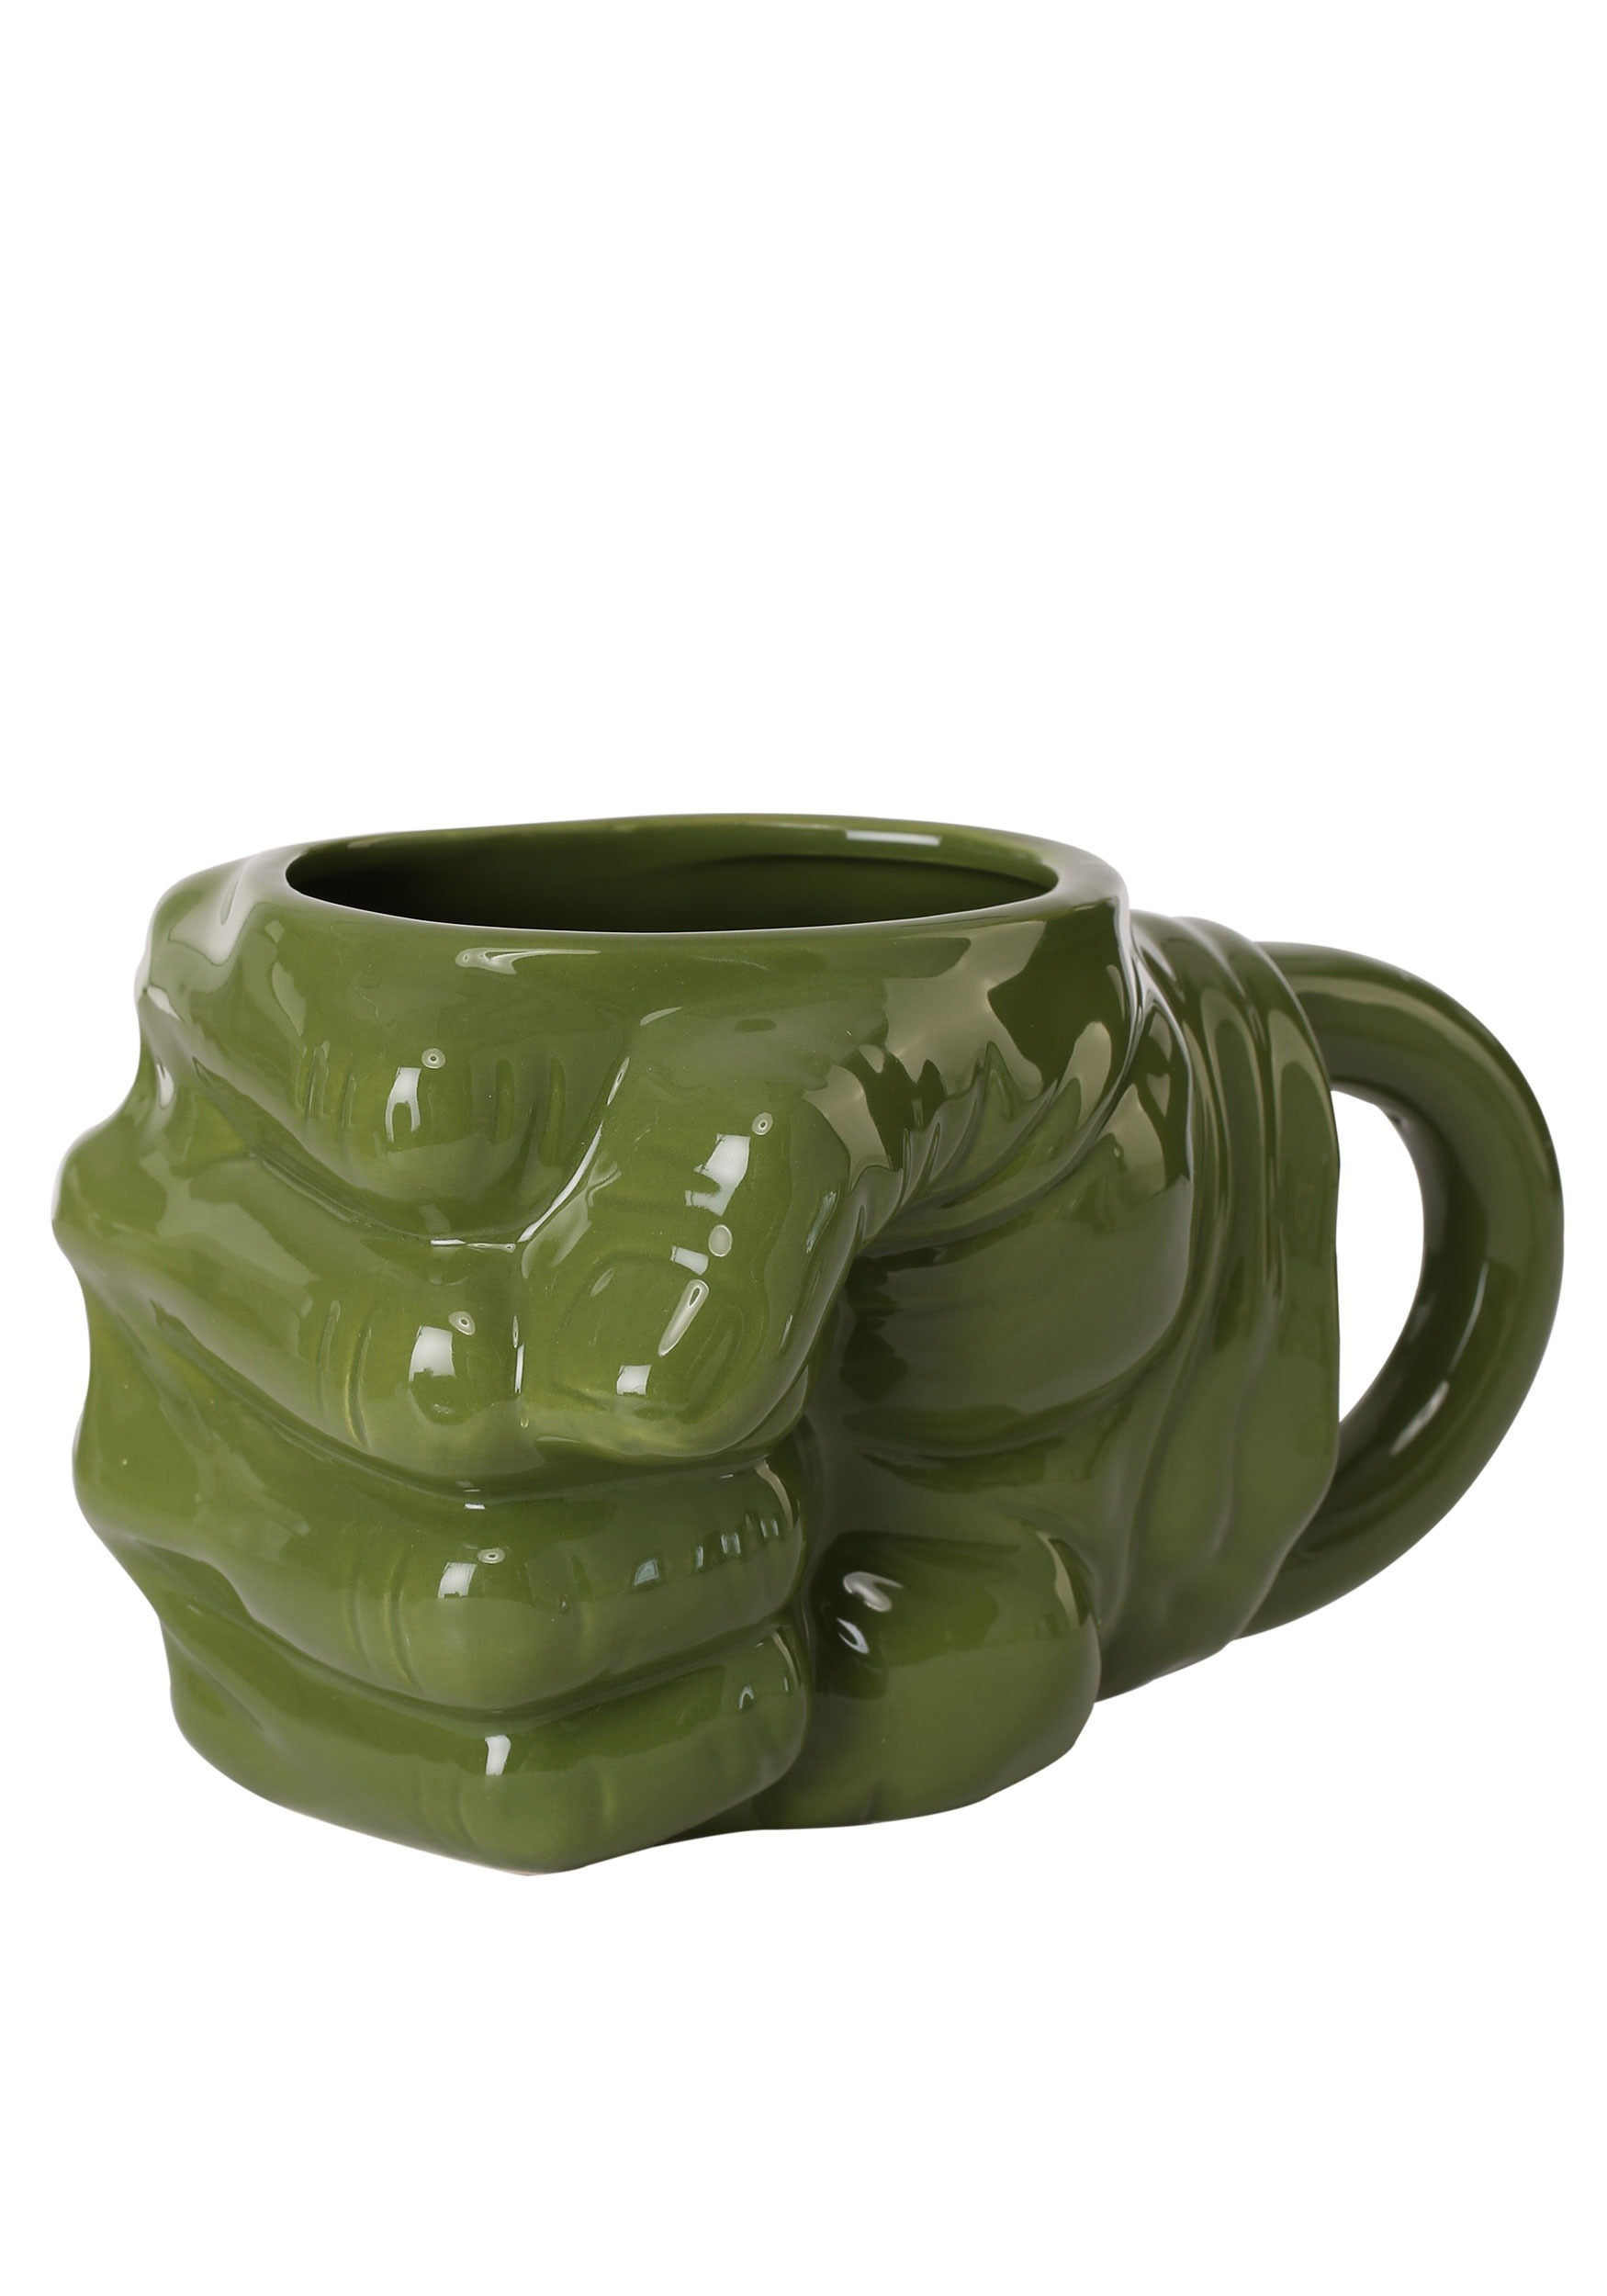 40436fd0a0b Marvel Hulk Fist Sculpted Ceramic Mug